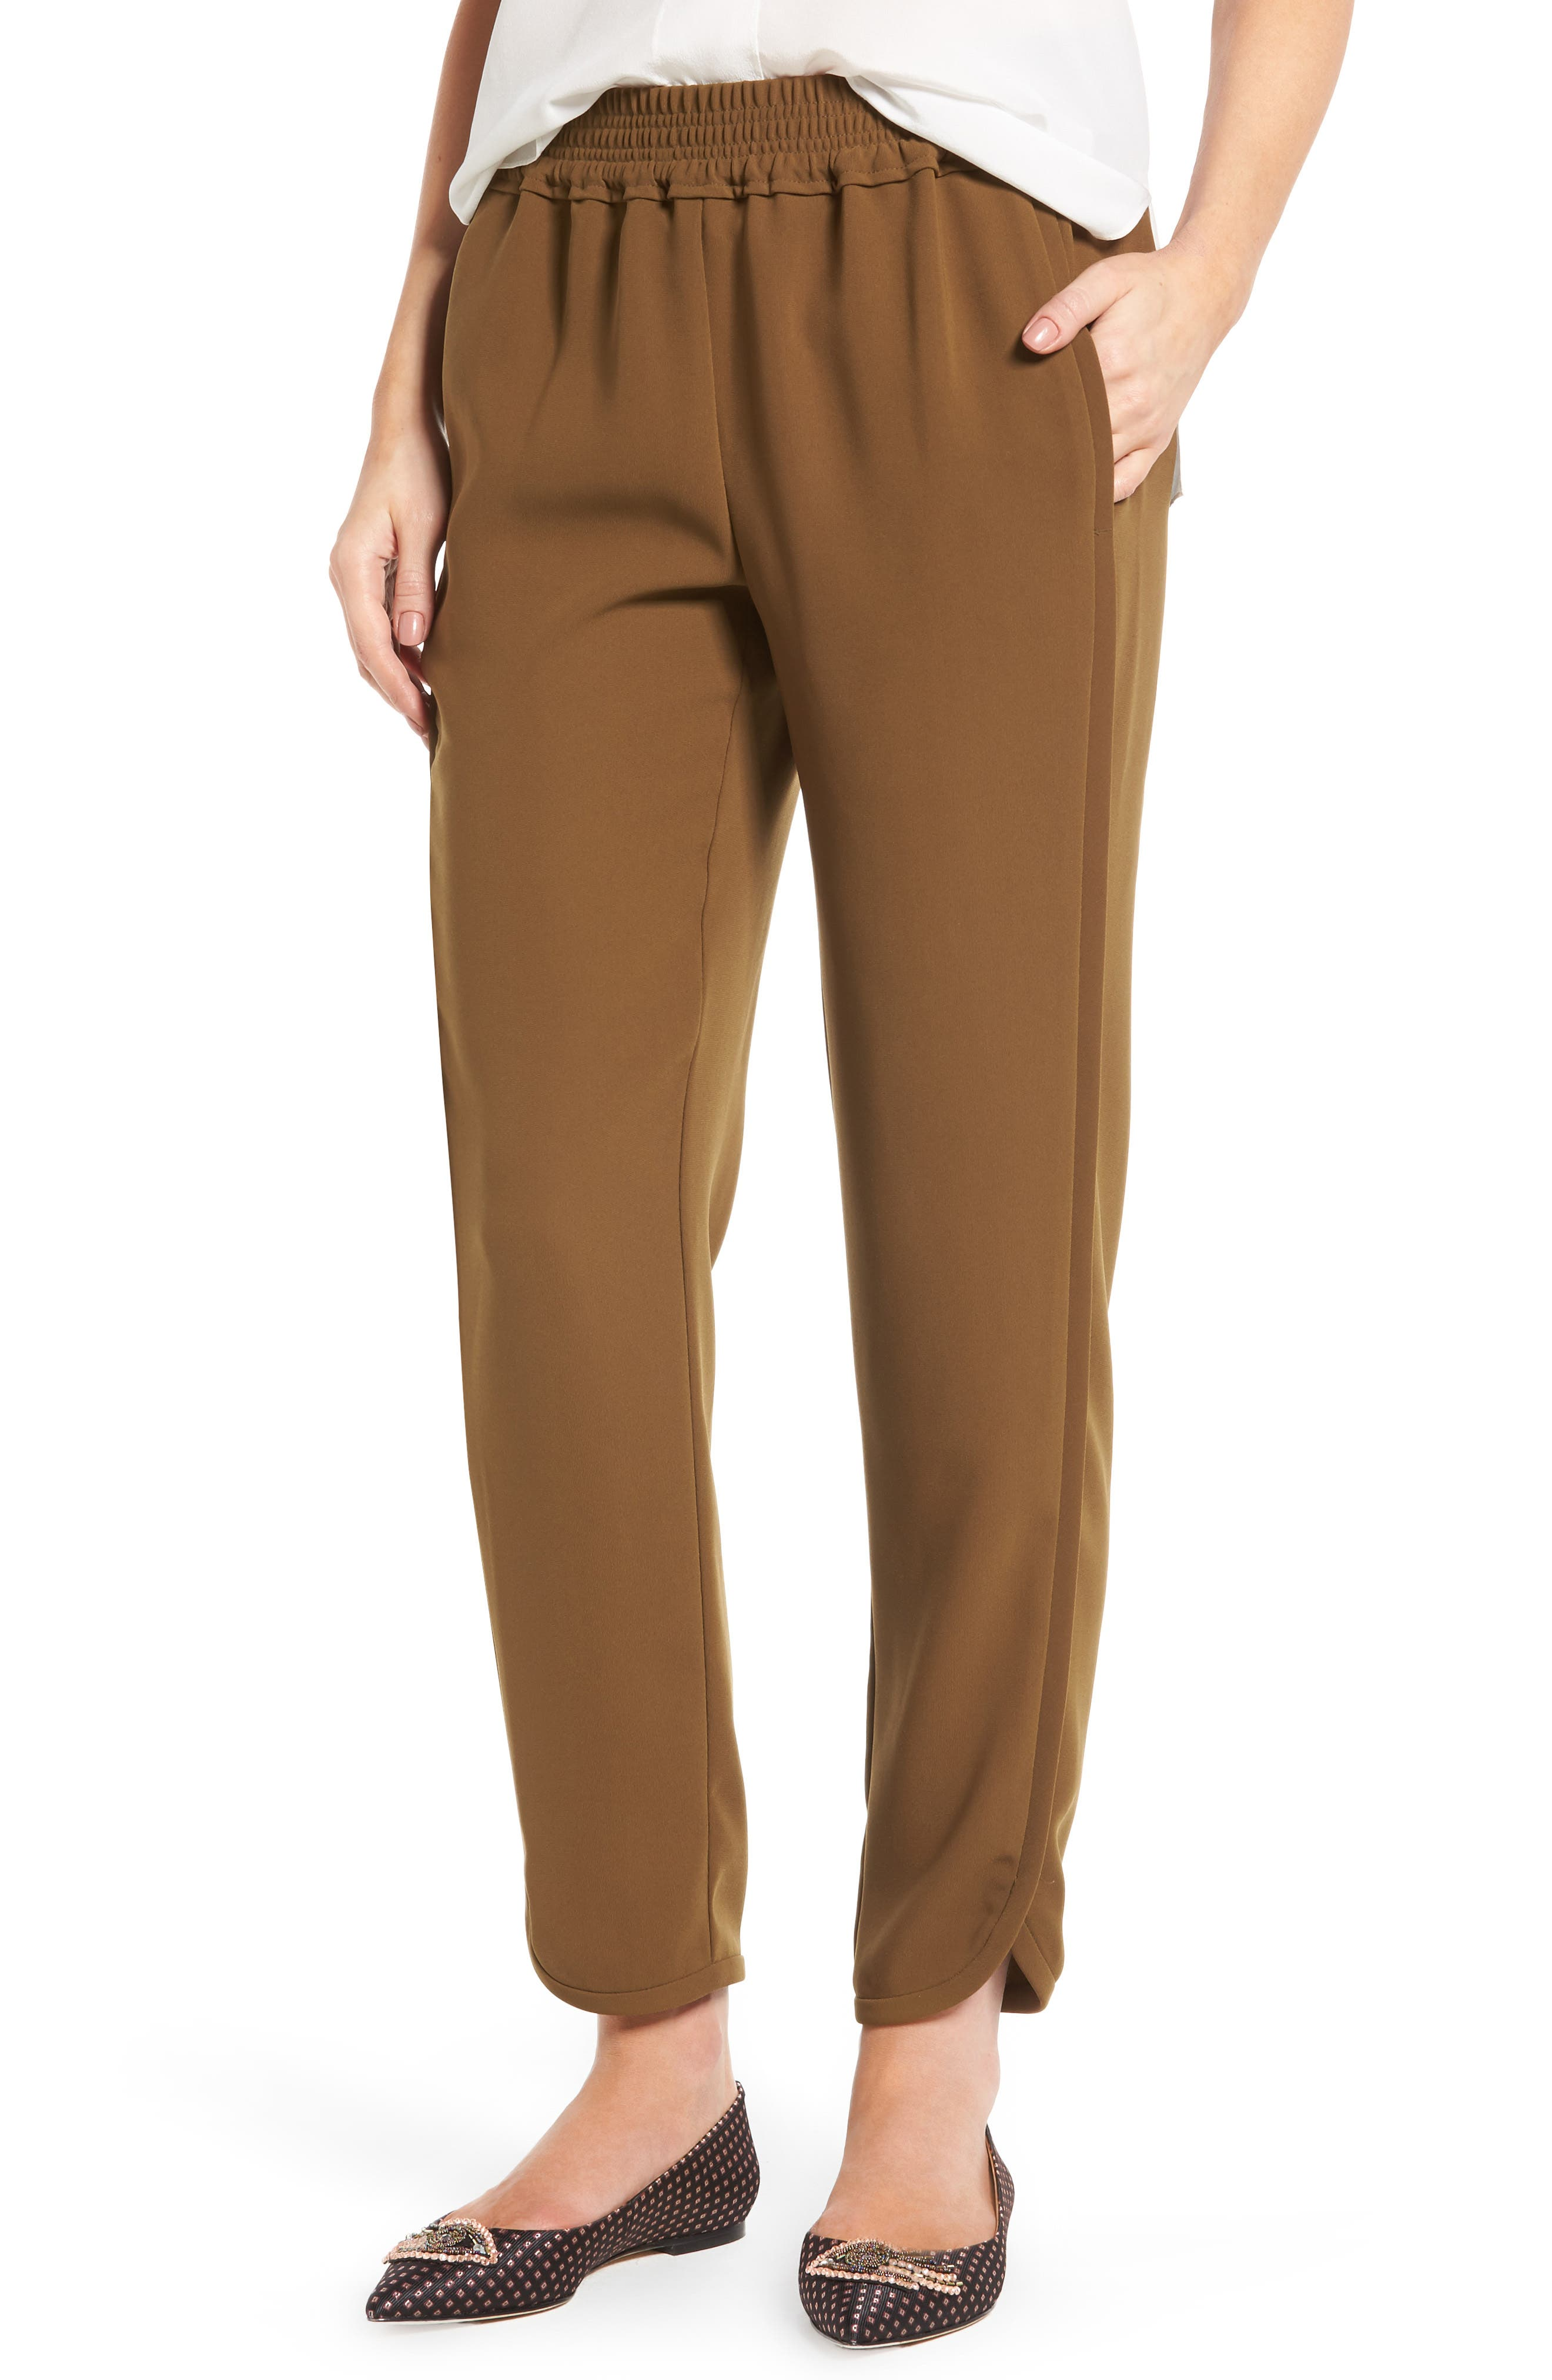 Main Image - J.Crew Reese Pants (Regular & Petite)